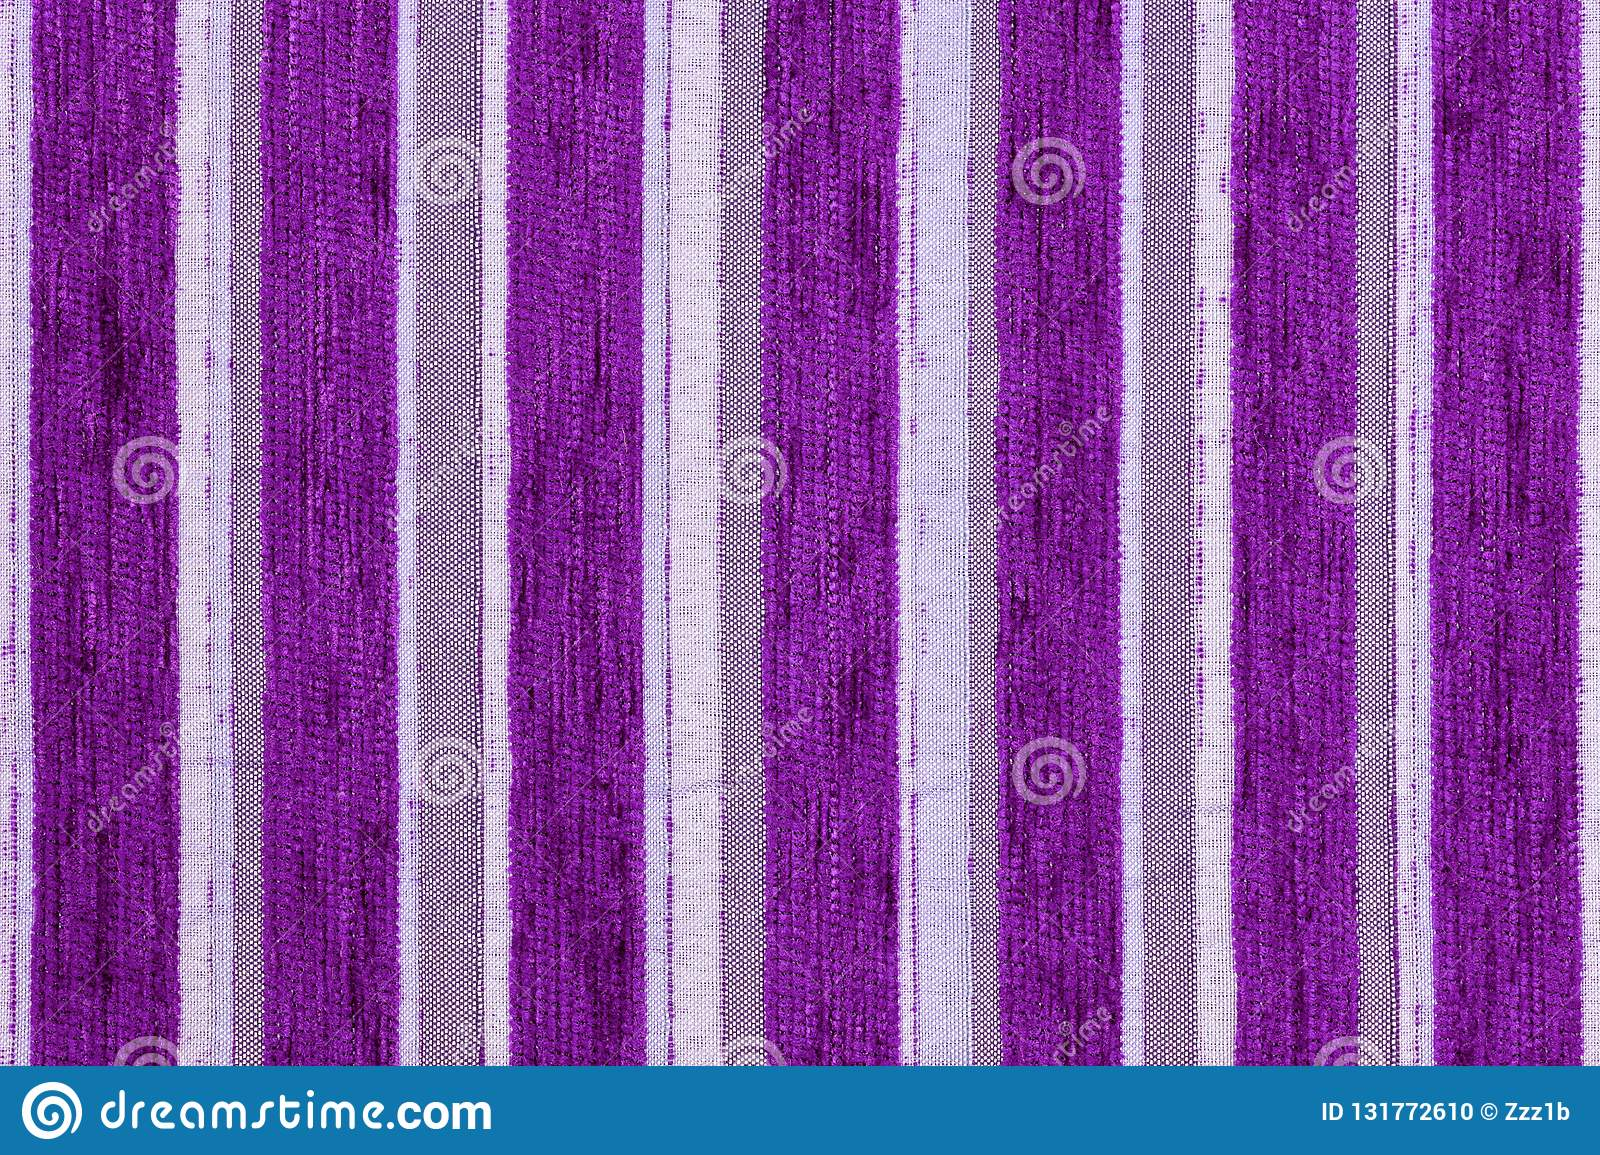 Dark Purple Vertical Stripes Synthetic Woven Upholstery Fabric Close